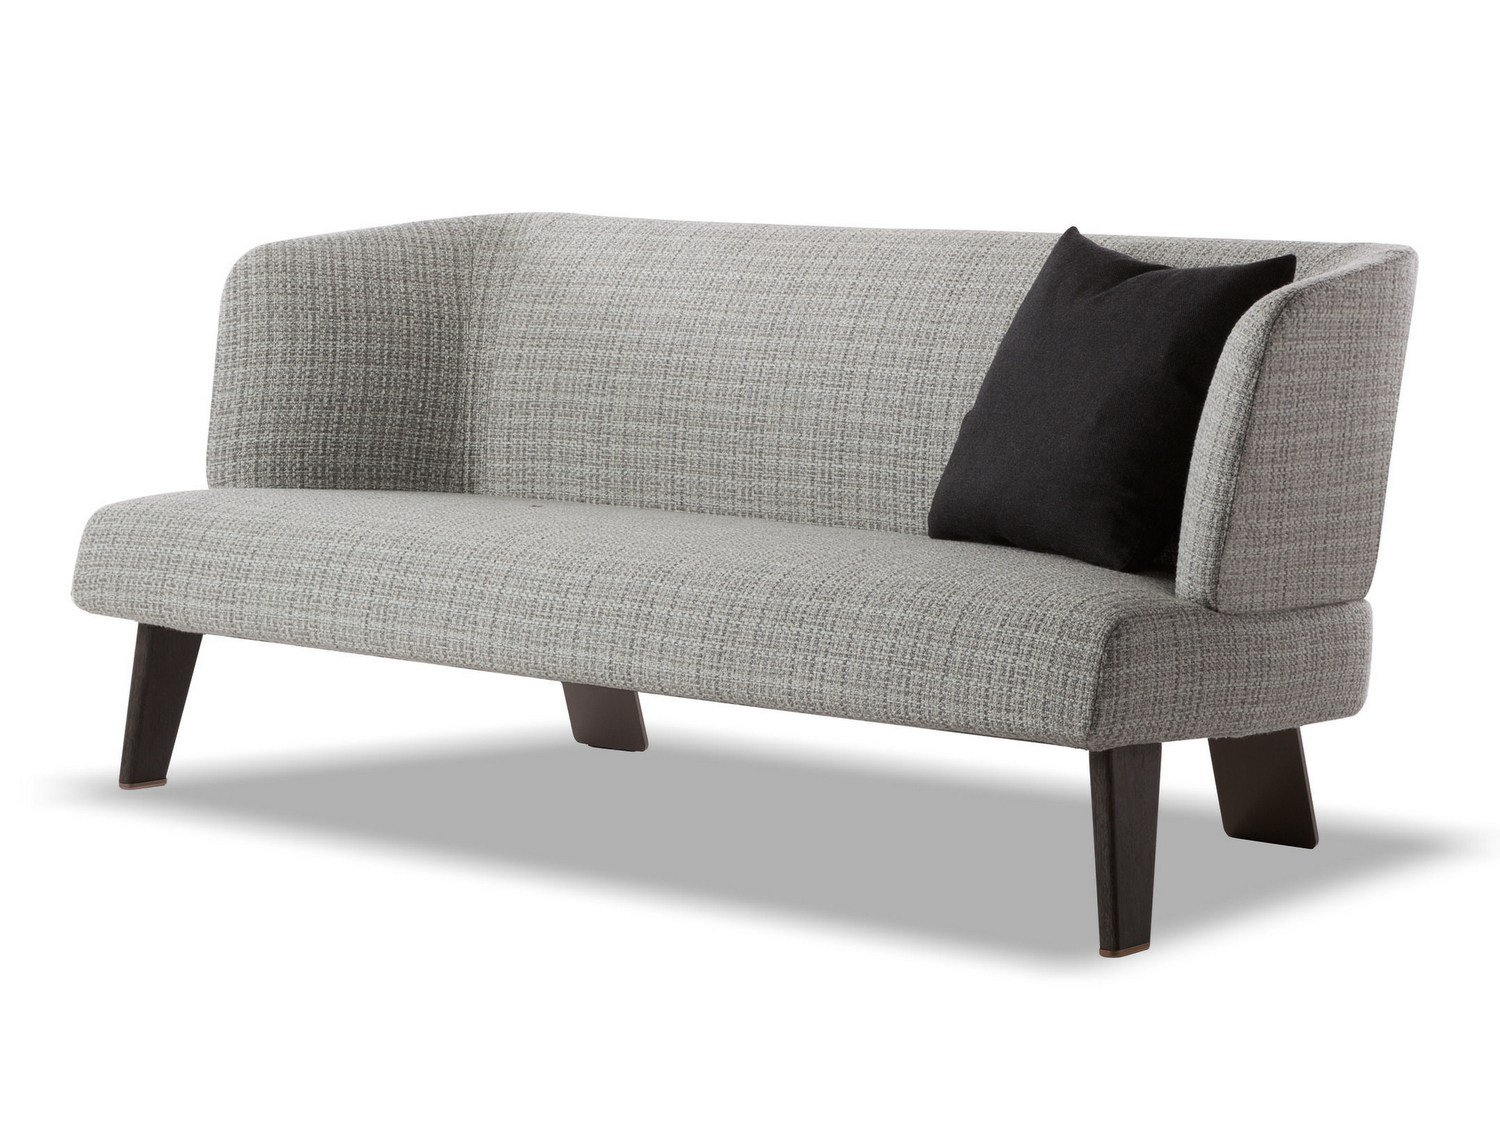 Sofa creed lounge by minotti design rodolfo dordoni for Couch lounge